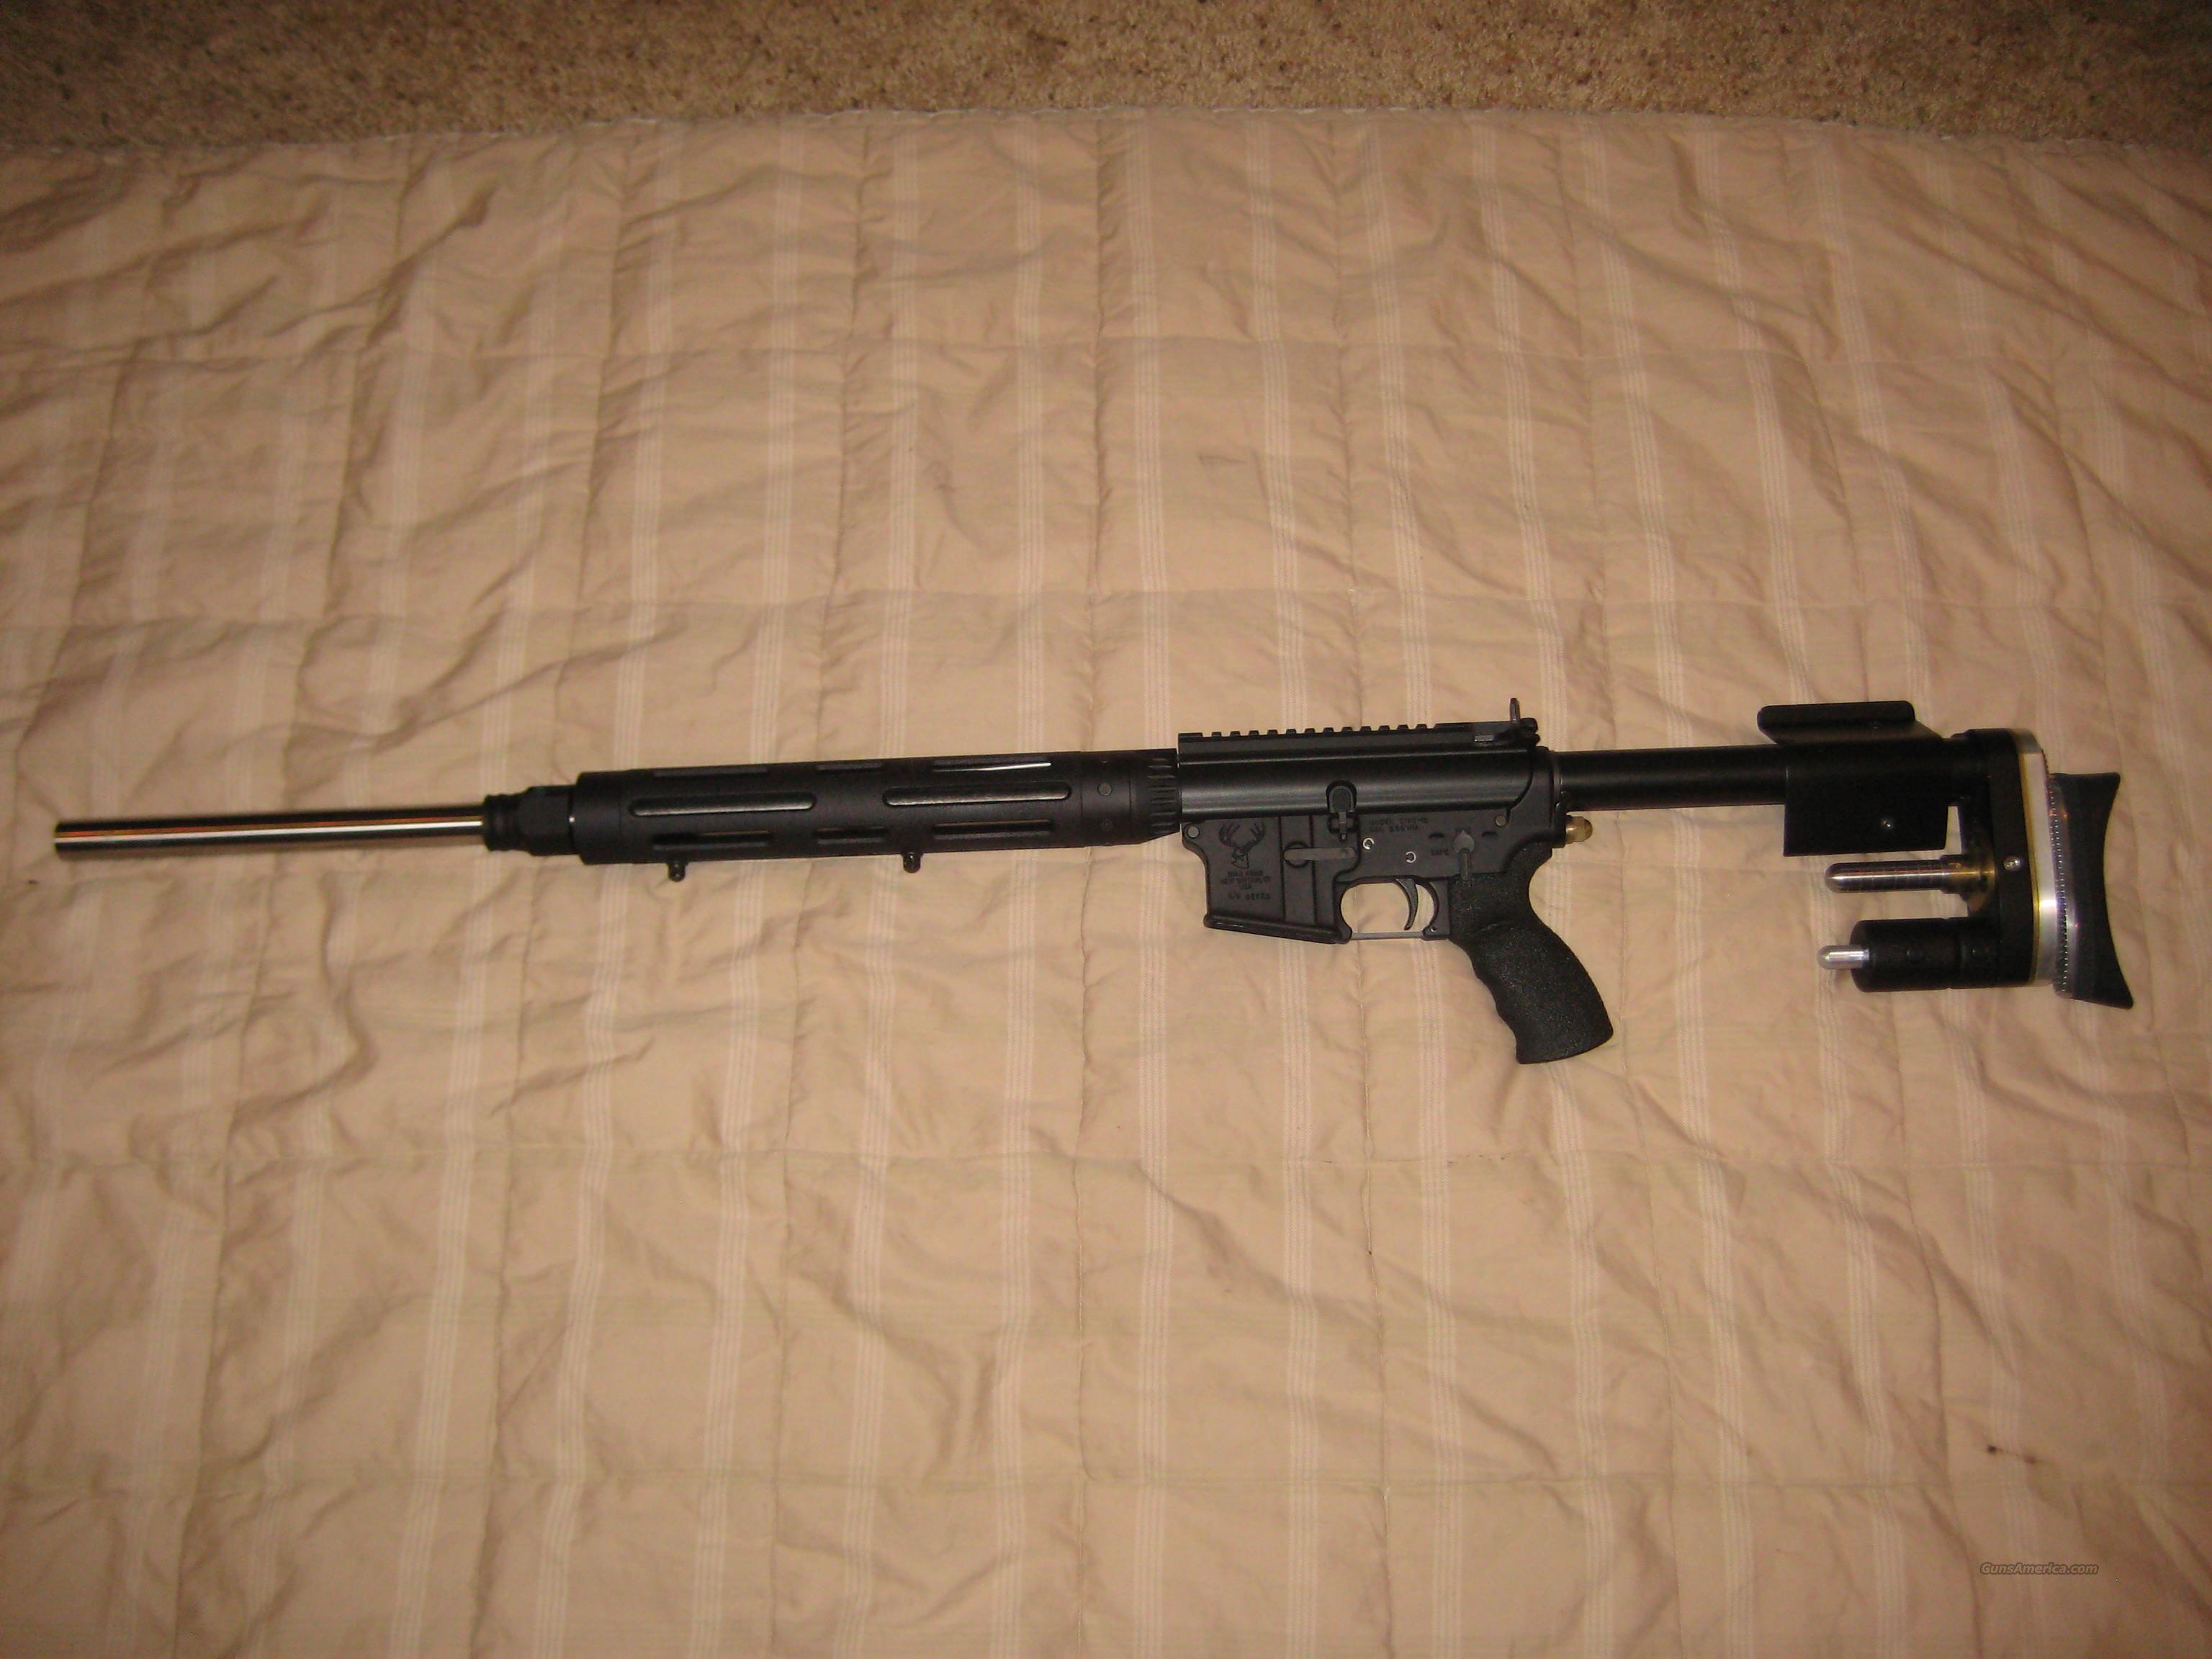 CUSTOM AR15 MATCH GUN WITH IRONSTONE STOCK  Guns > Rifles > AR-15 Rifles - Small Manufacturers > Complete Rifle